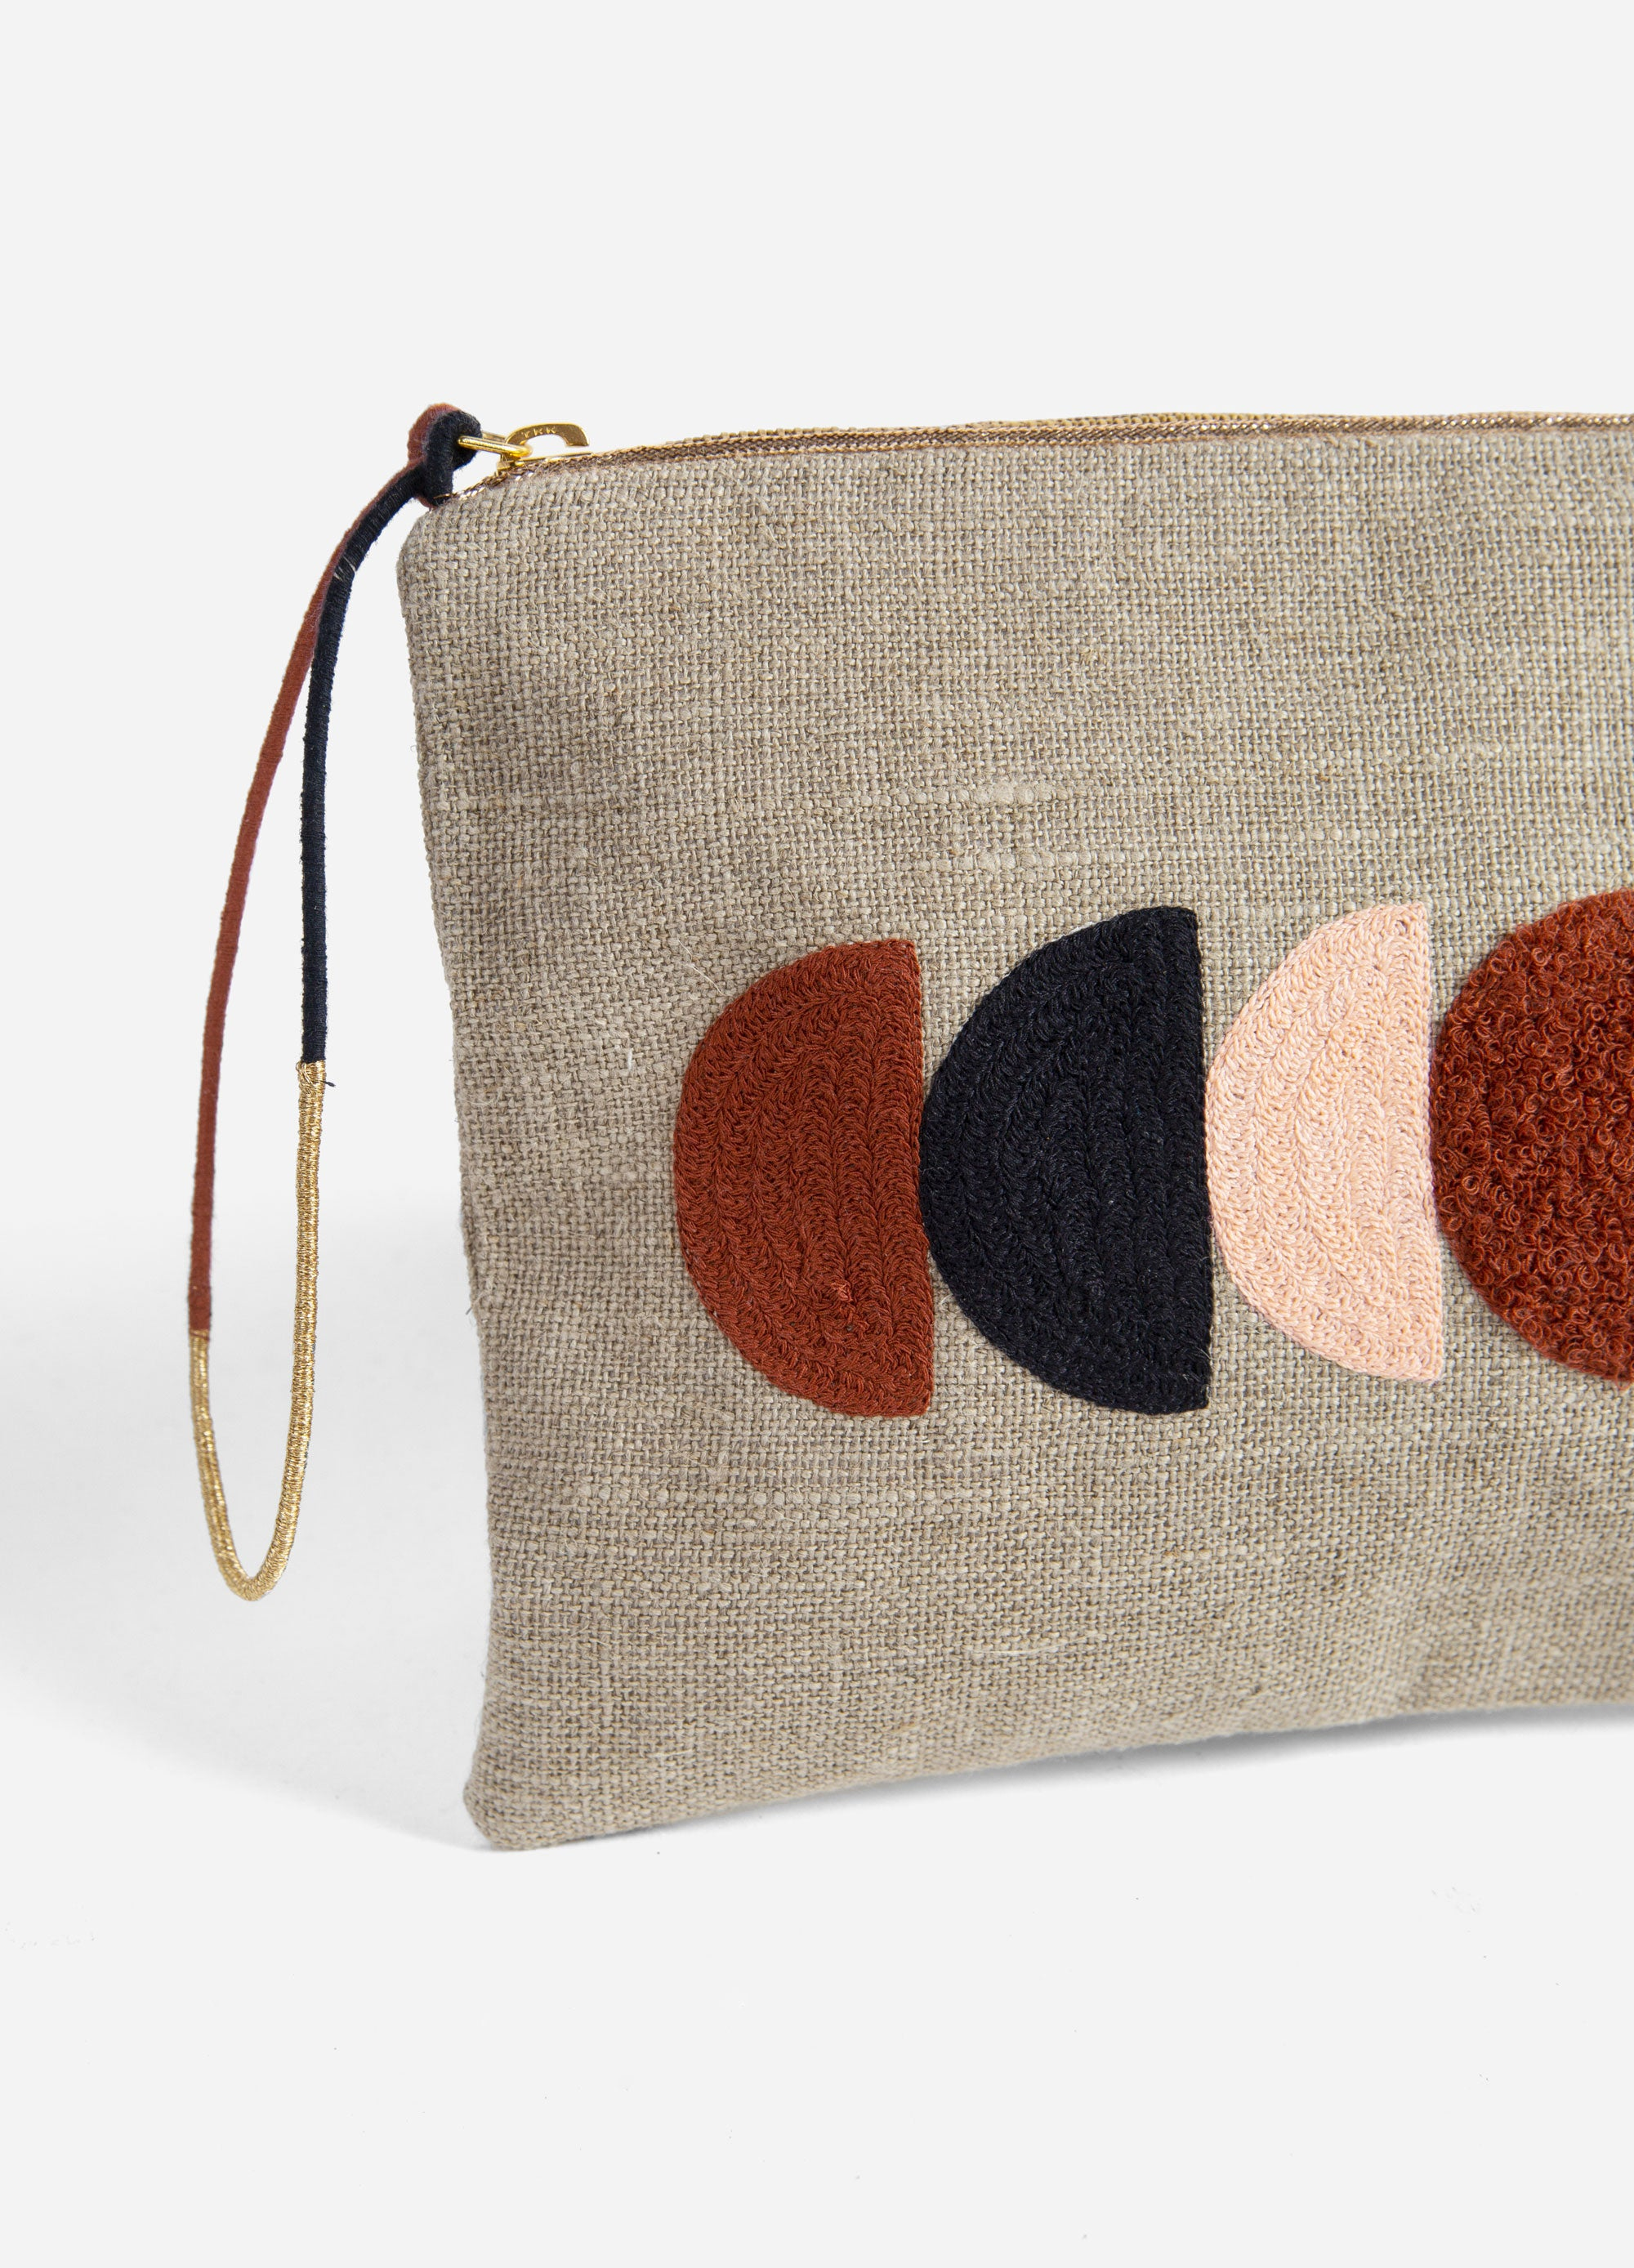 Circe - Embroidered Linen Pouch - Natural/Black